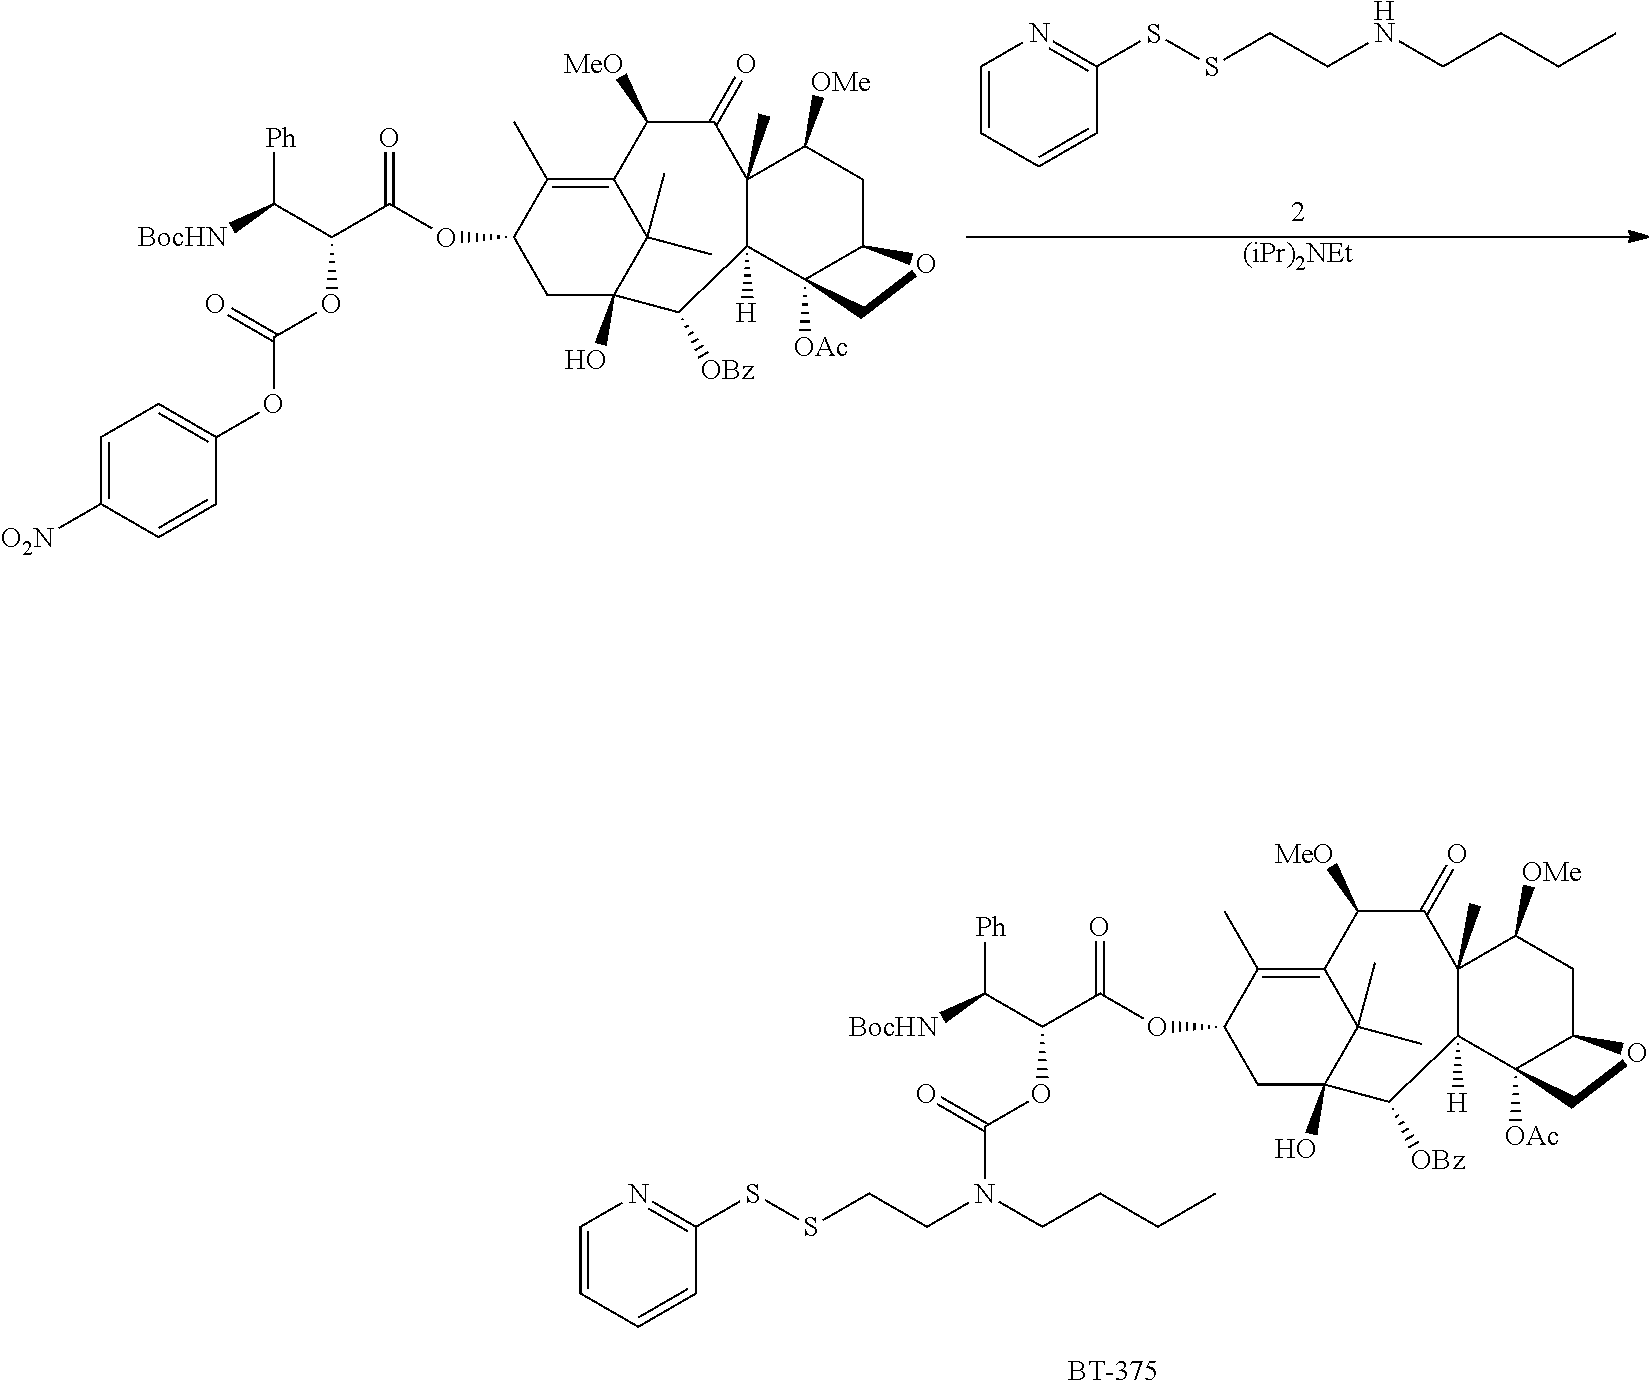 Us20170151339a1 targeted conjugates and particles and formulations thereof patents